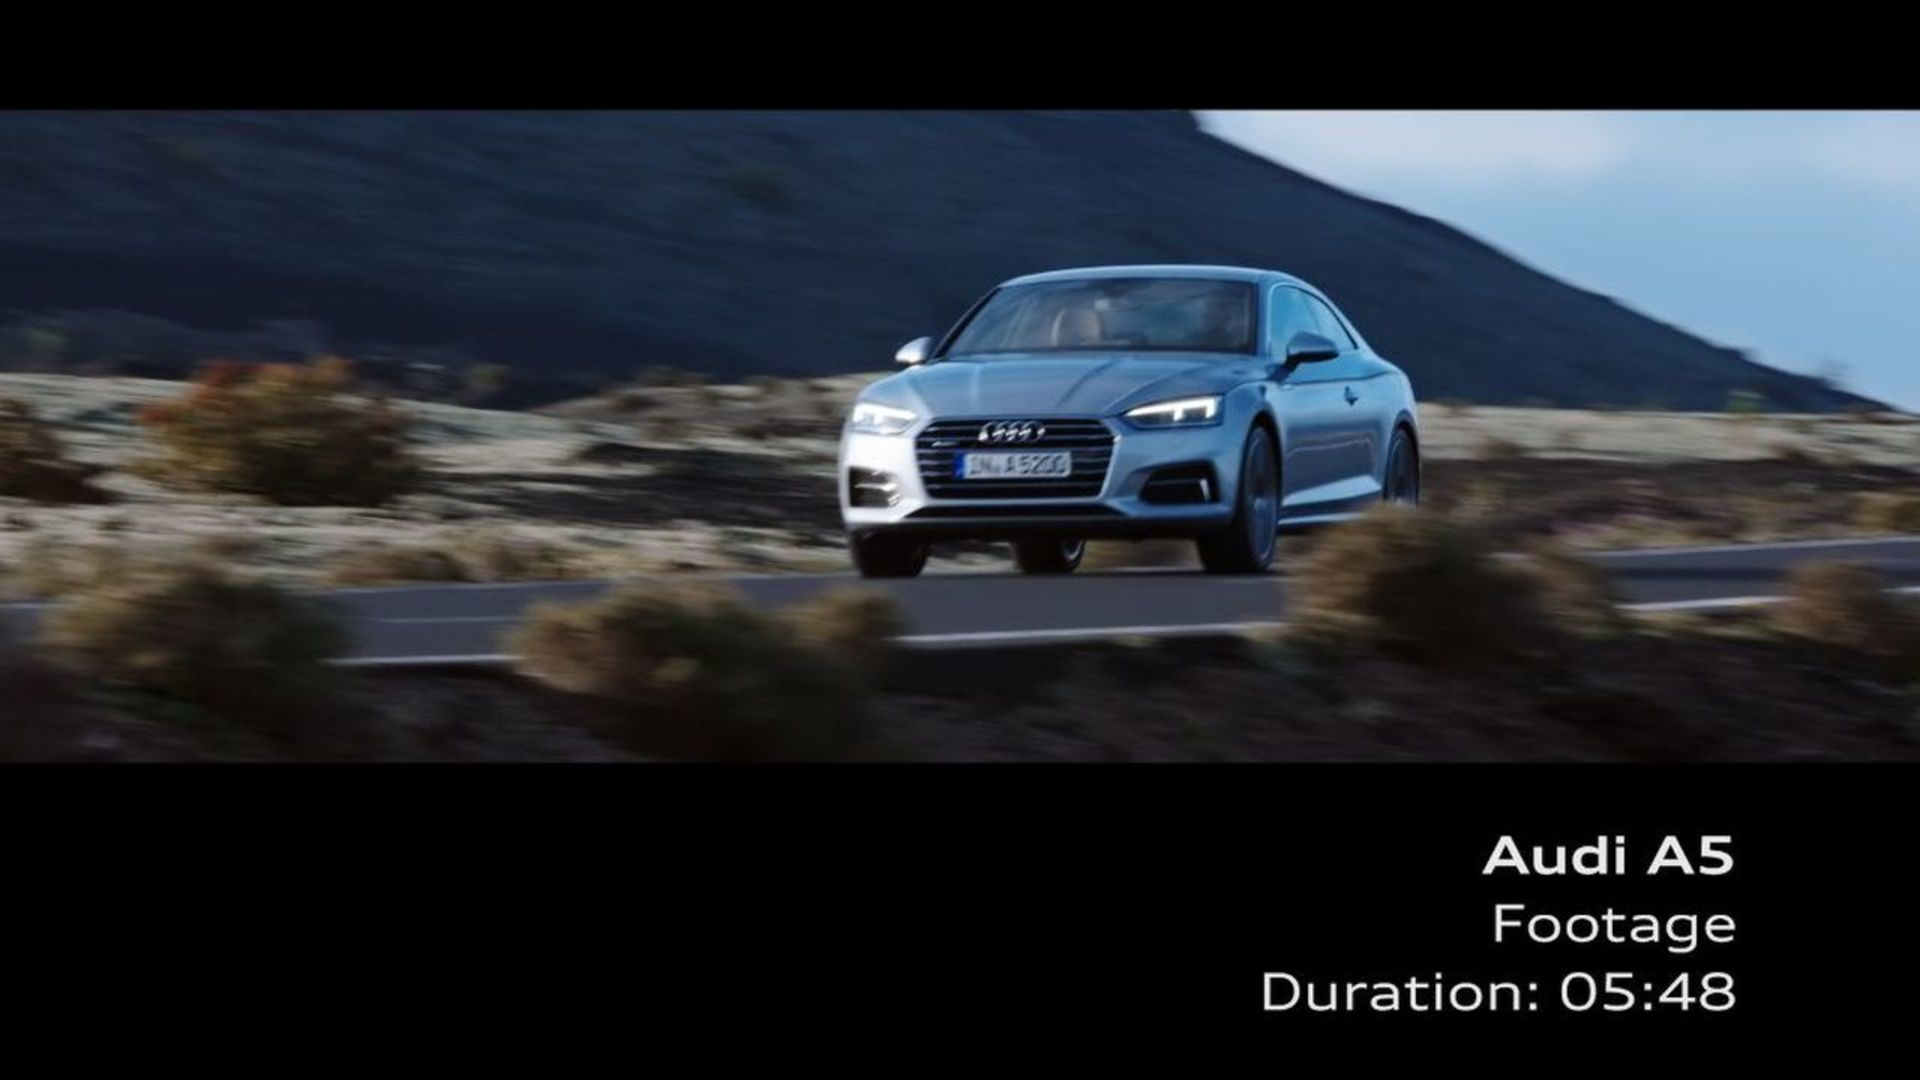 Audi A5 Coupé – Footage